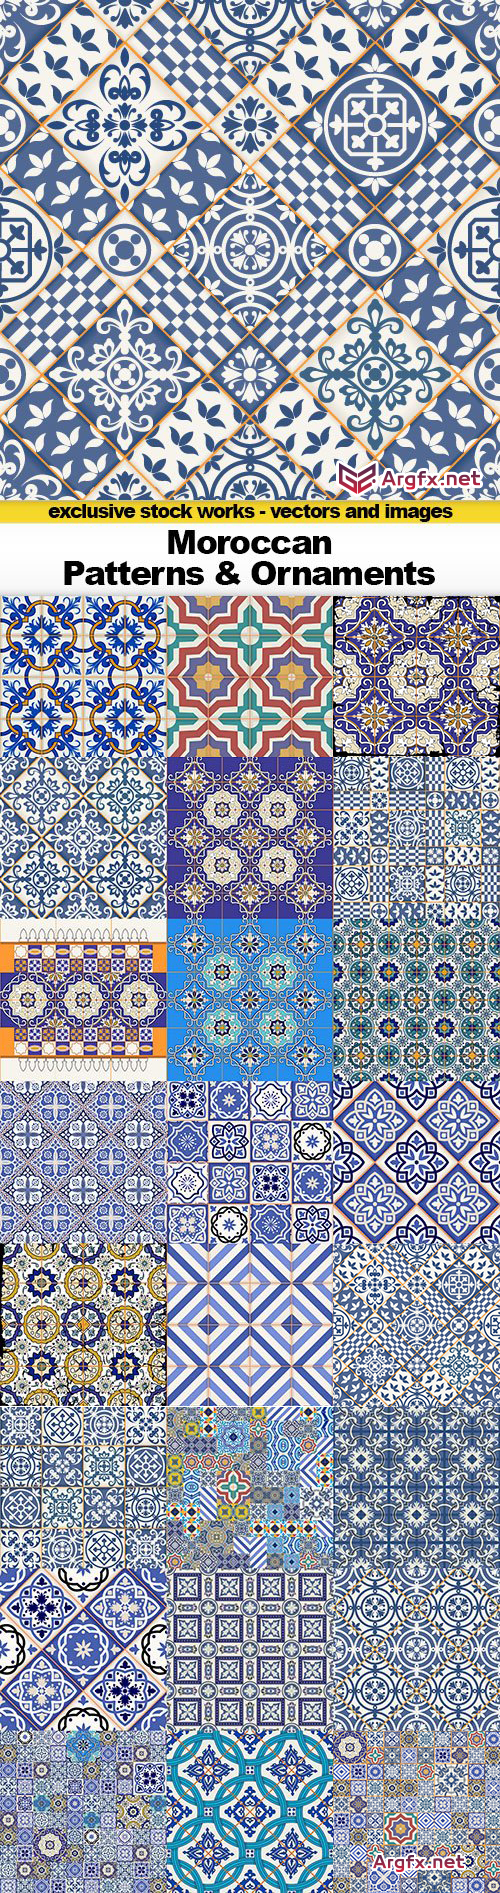 Moroccan Patterns & Ornaments, 25x EPS